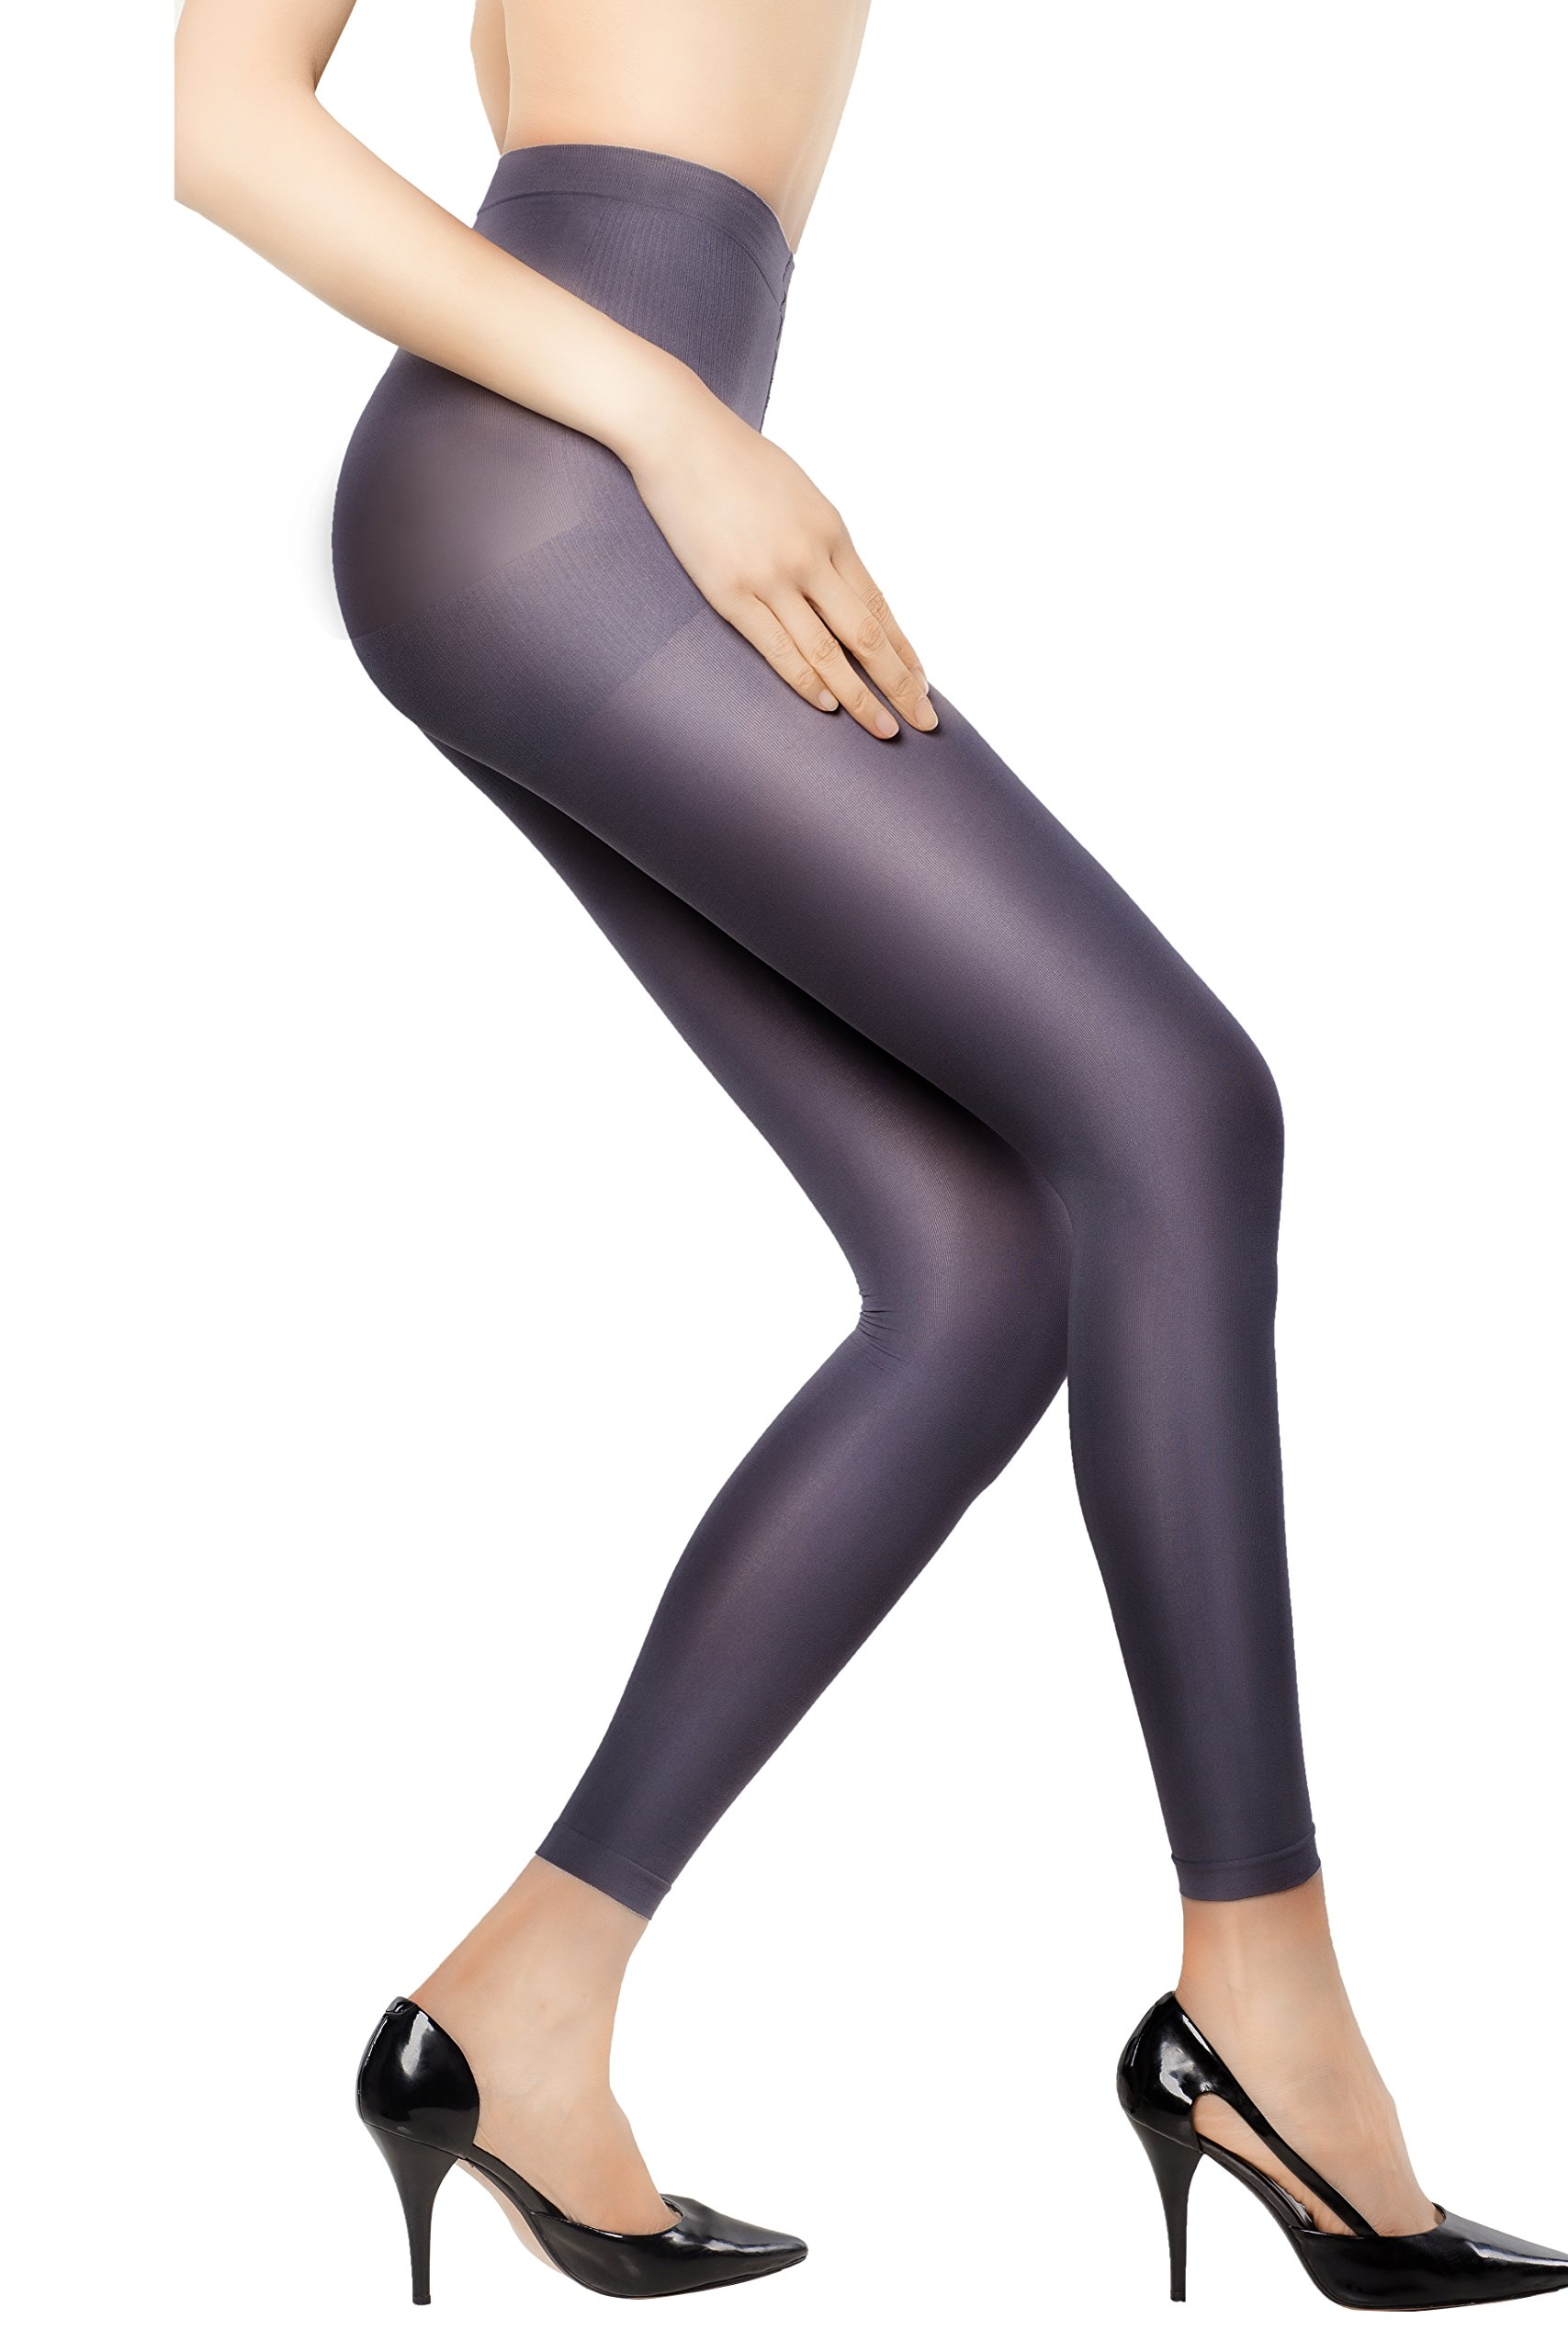 +MD Women's 8-15mmHg Graduated Compression Leggings Medical Quality Ladies Footless Support Tights Grays